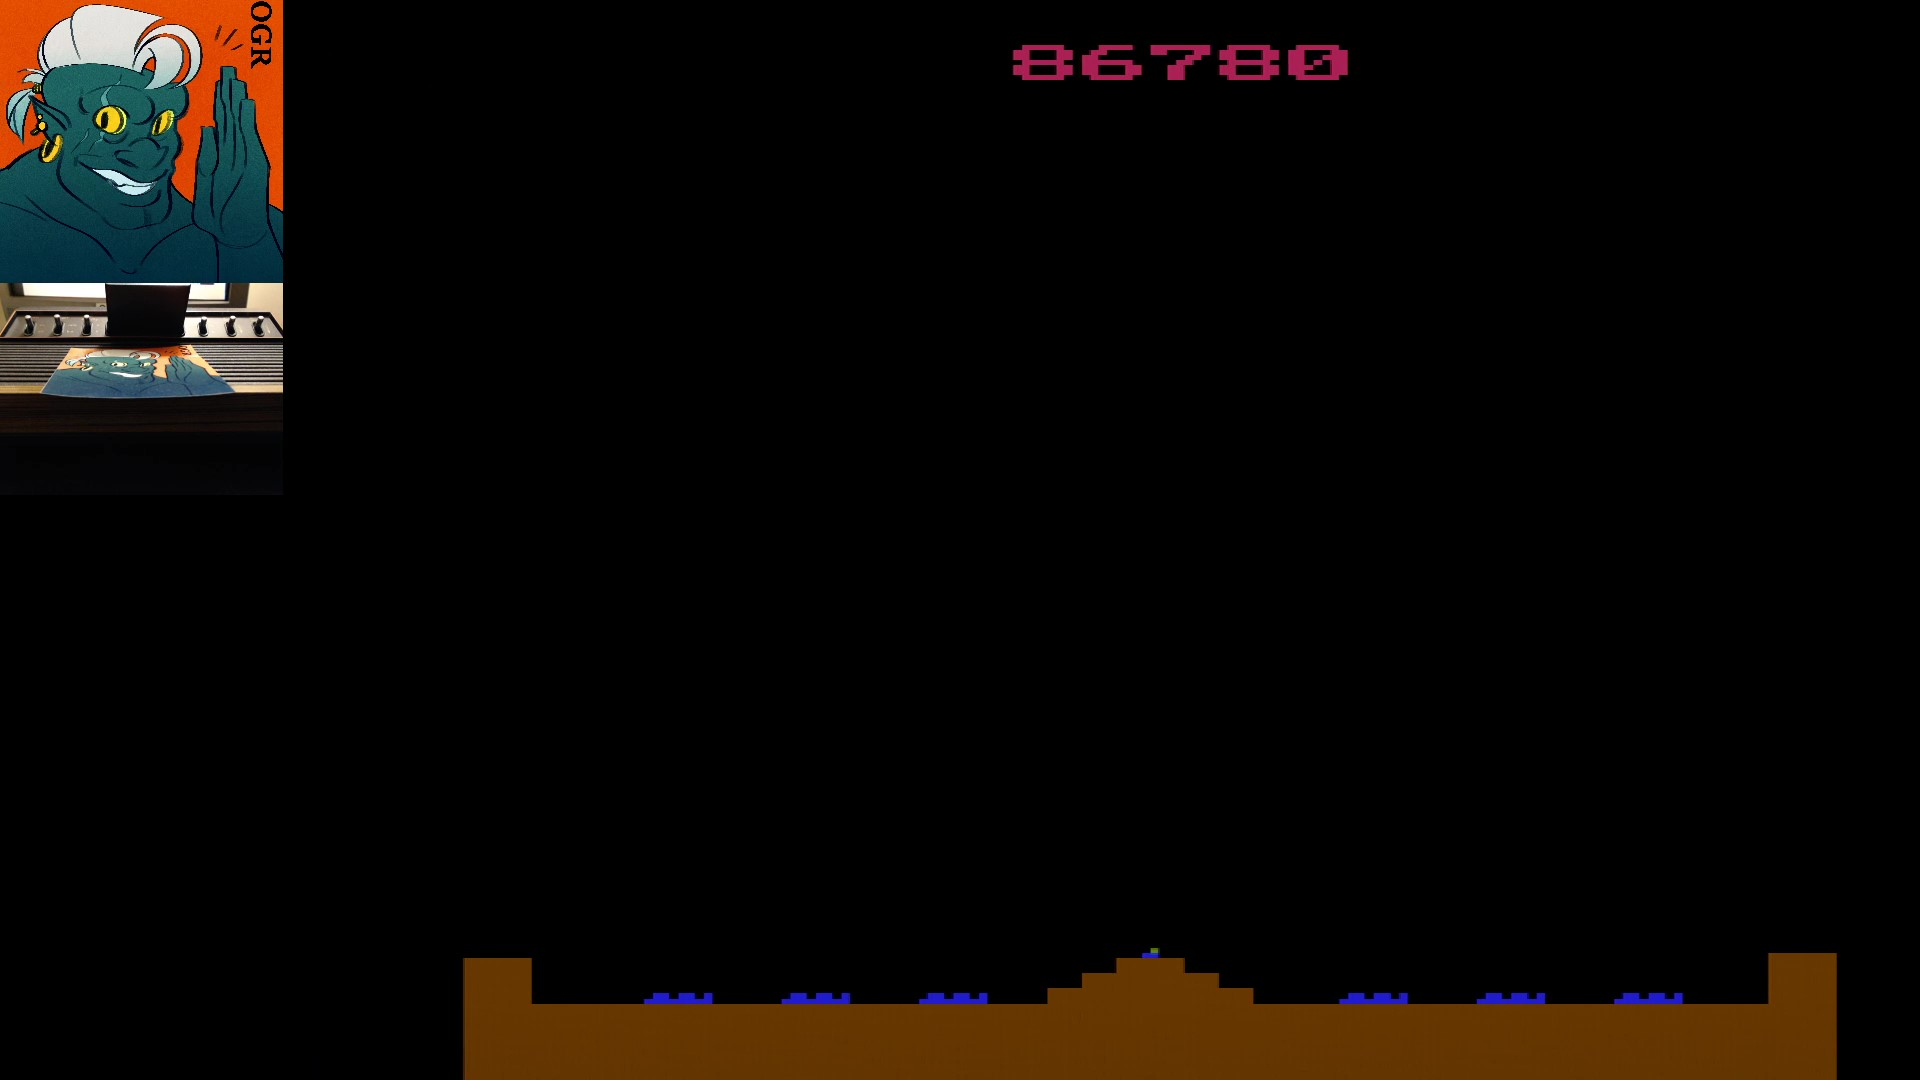 AwesomeOgre: Missile Command (Atari 2600 Expert/A) 86,780 points on 2020-05-01 01:39:15